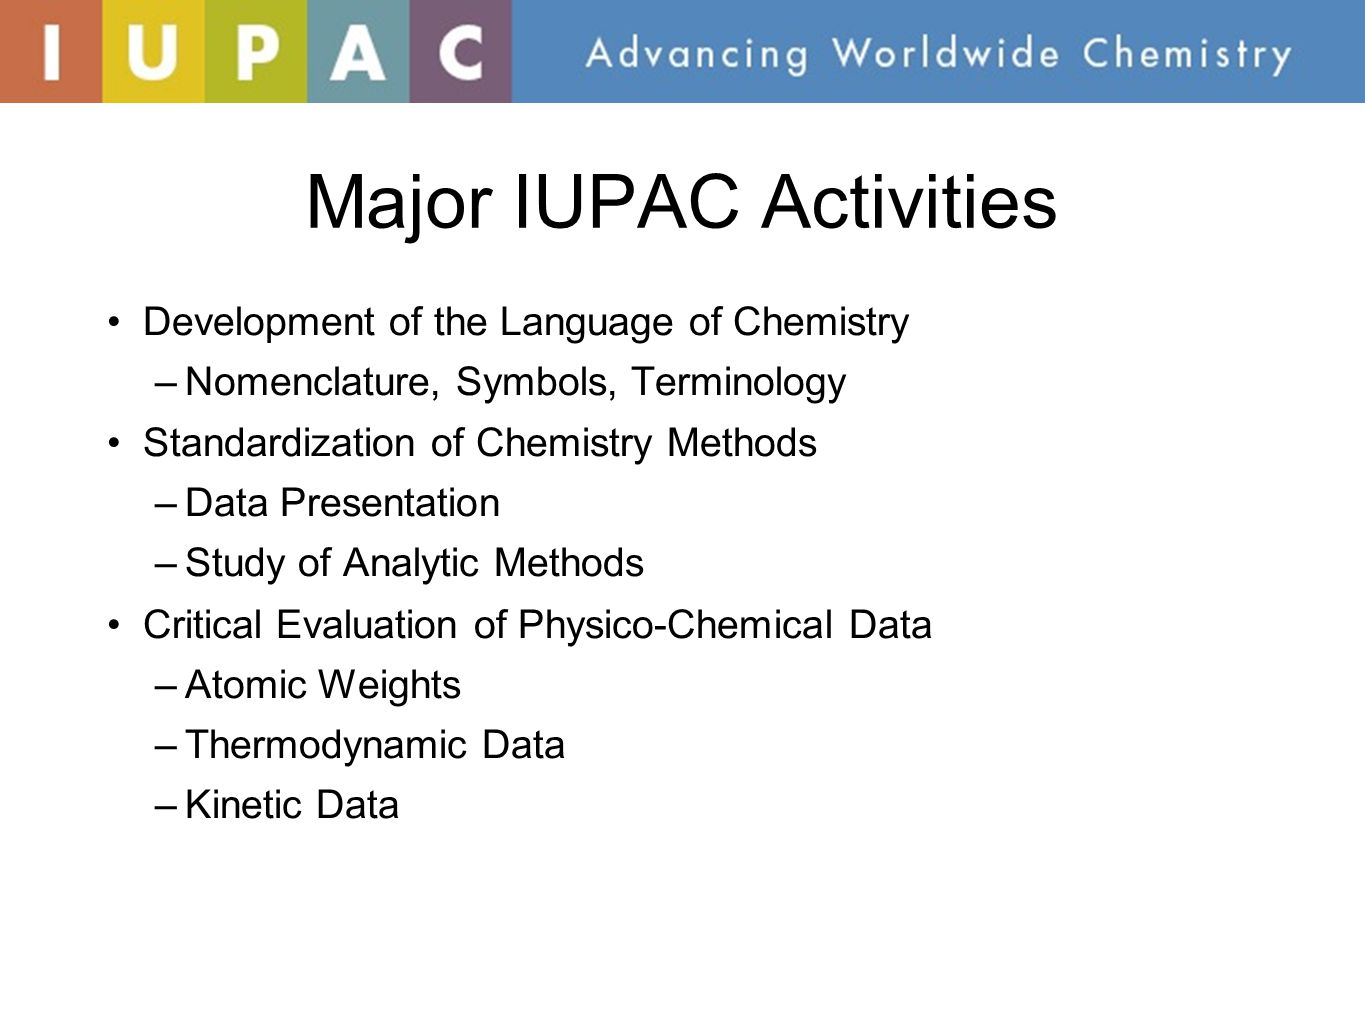 Major IUPAC Activities (Cont.) Data Exchange Standards for Computers and Instruments Sponsorship of Conferences –Biennial IUPAC Congress (Torino, Italy 2007, Glasgow, Scotland 2009, San Juan, Puerto Rico 2011, Istanbul 2013) –More than 30 Specialized Symposia each Year (WPC 2014) Chemistry Education Industrial Safety and Environmental Programs CHEMRAWN Conferences addressing Chemistry and Societal Impact